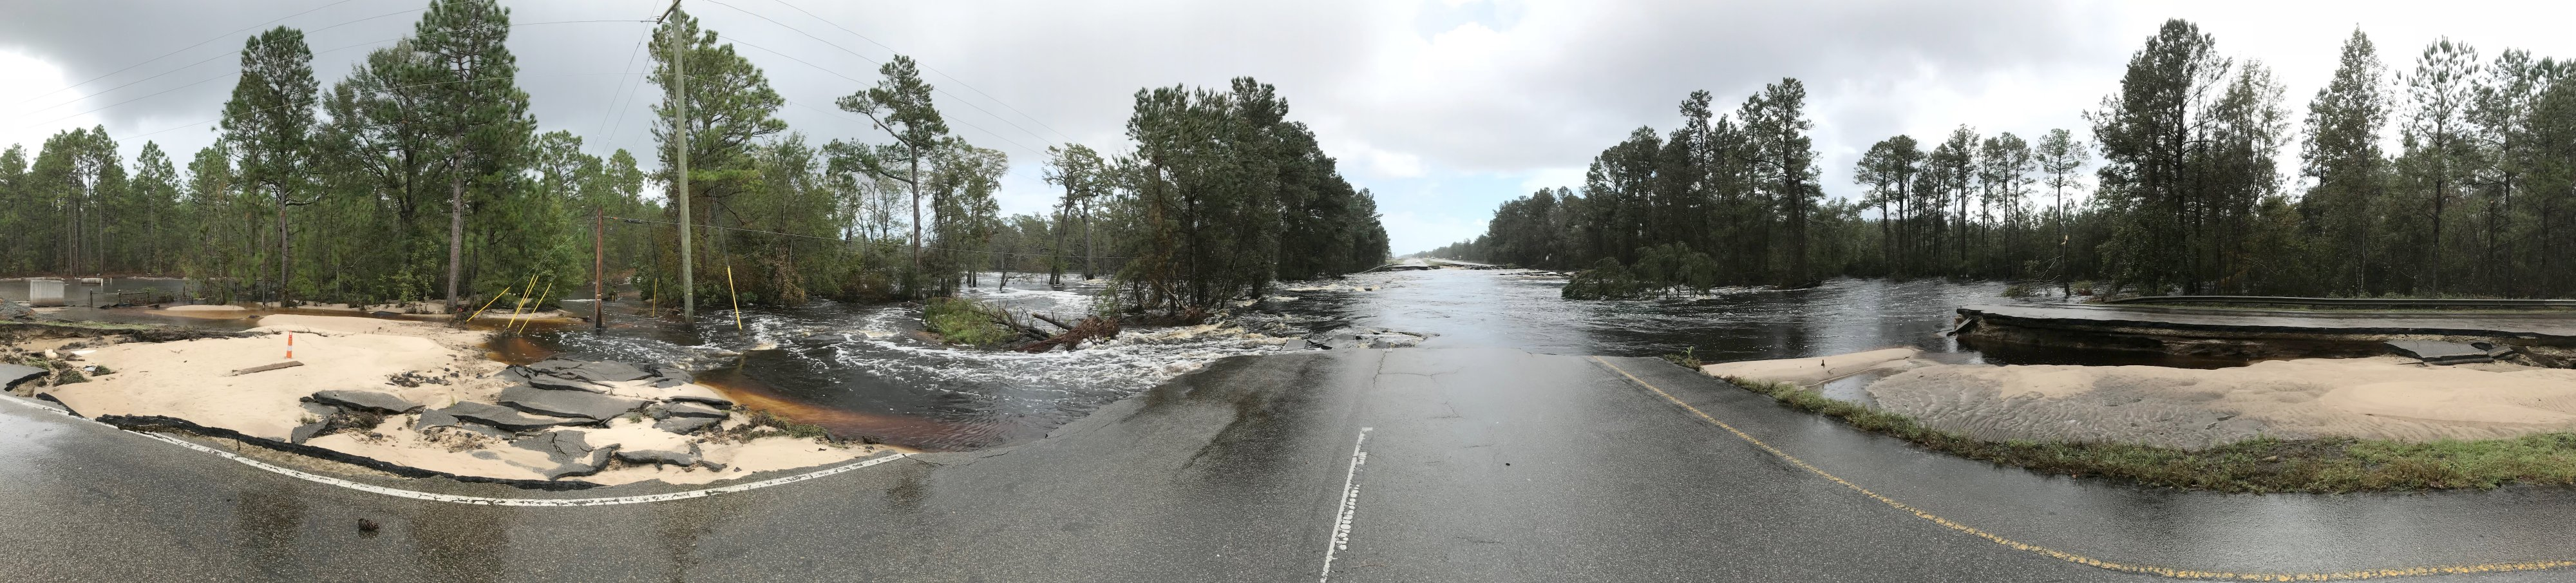 Panorama of the Highway 421 washout just north of Wilmington. The Cape Fear River scoured a path through the highway to reach the Northeast Cape Fear River channel off to the east. (Photo credit: Rick Neuherz/NWS)